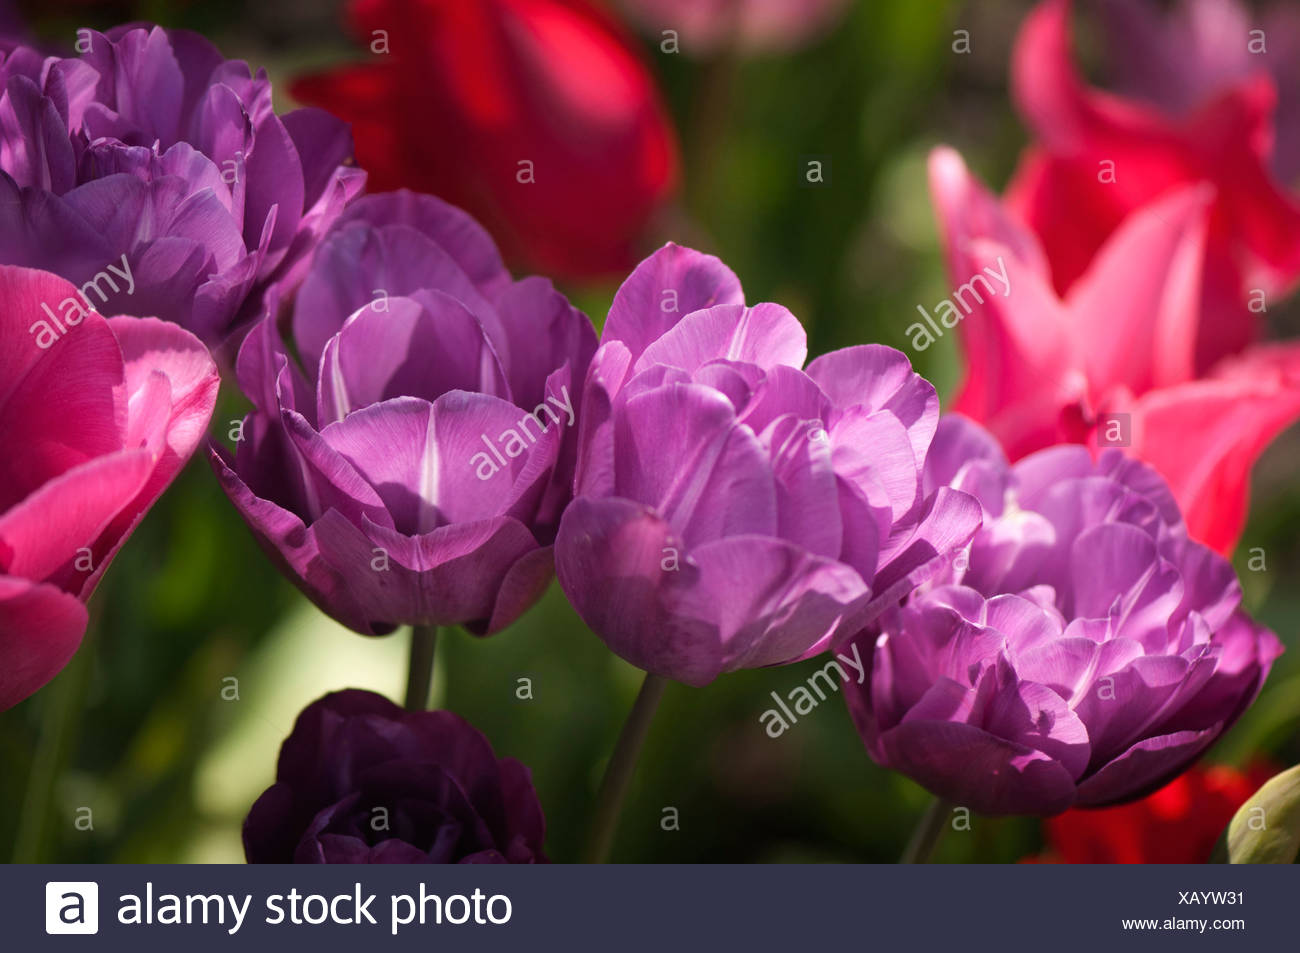 Tulipa 'Blue spectacle', Tulip, Purple. - Stock Image